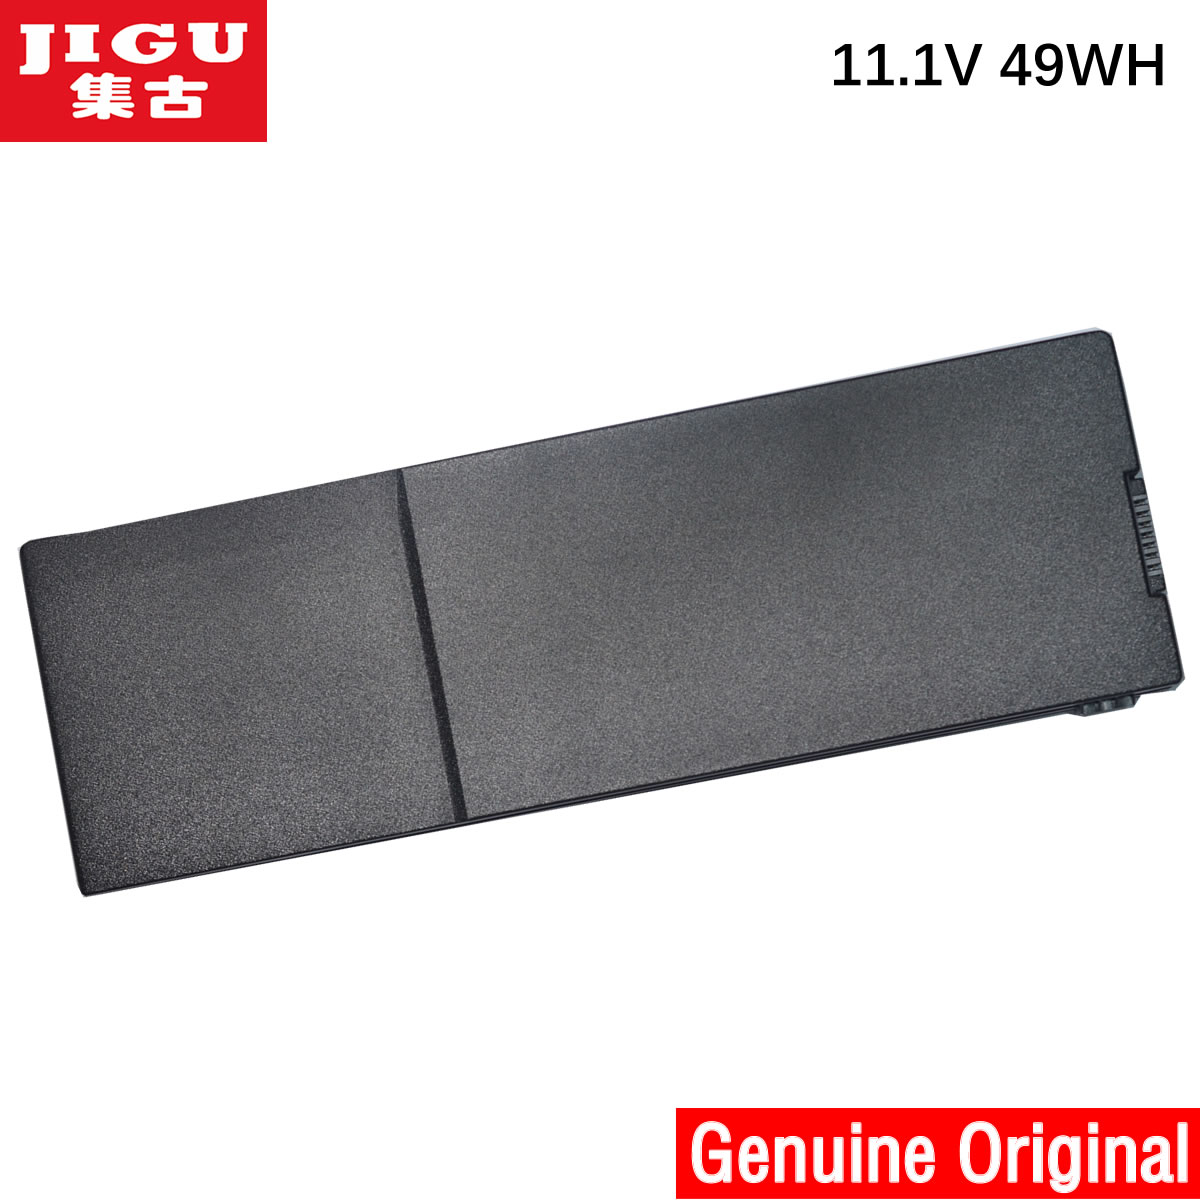 JIGU VGP-BPS24 Original laptop Battery For SONY vaio PCG-4100 SVS15 SVS13 SVS13A SVT13 SVT14 VPC-SA SB VPC-SD VPC-SE new laptop swiss qwerty replacement keyboard for sony vpc z1 vpcz1 pcg 31113t 31112t 31111t with backlit